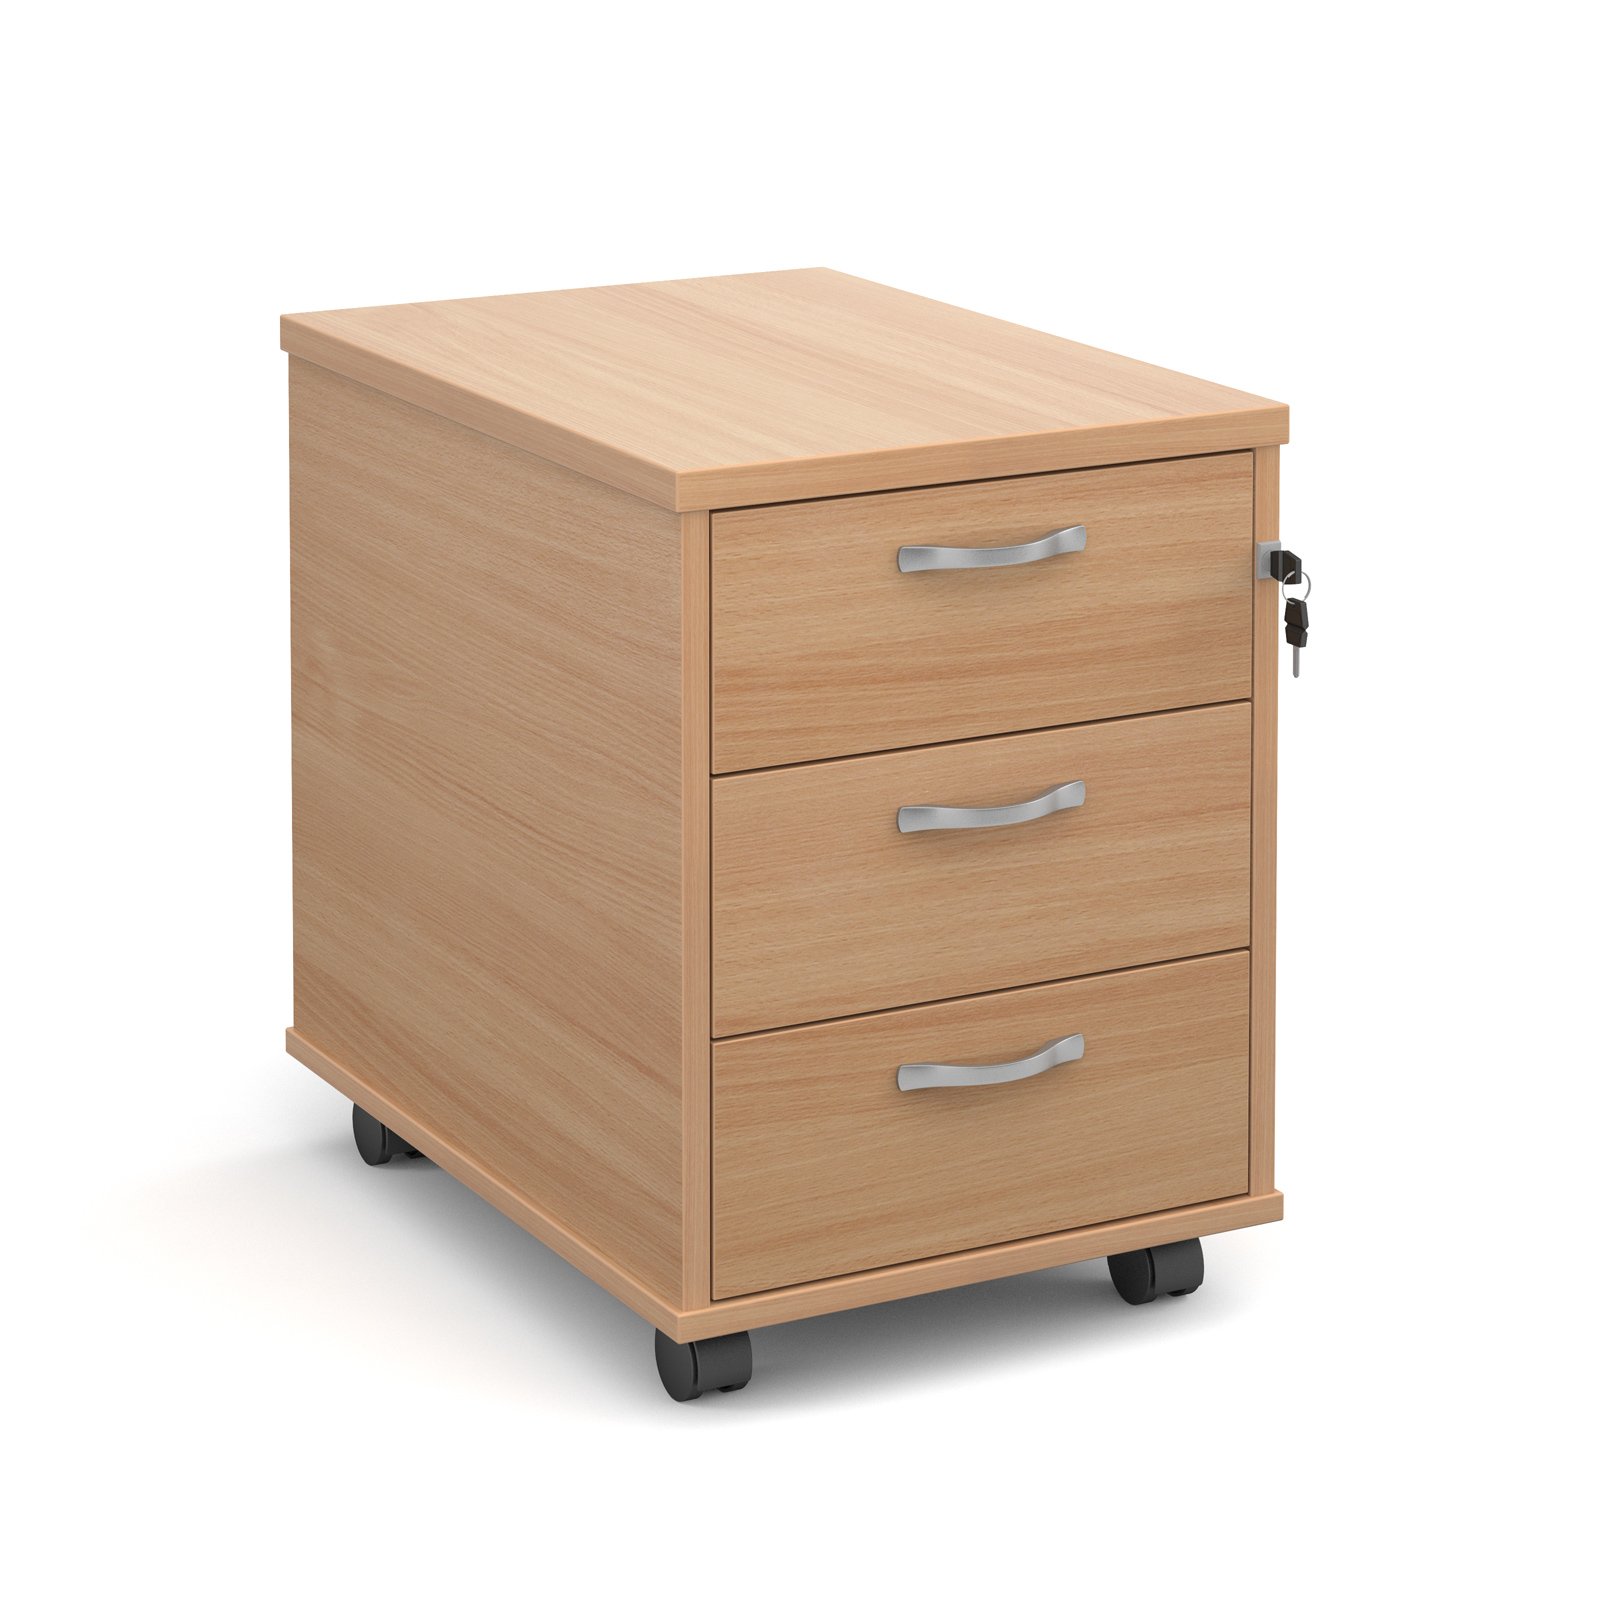 3 Drawer Mobile Pedestal in beech